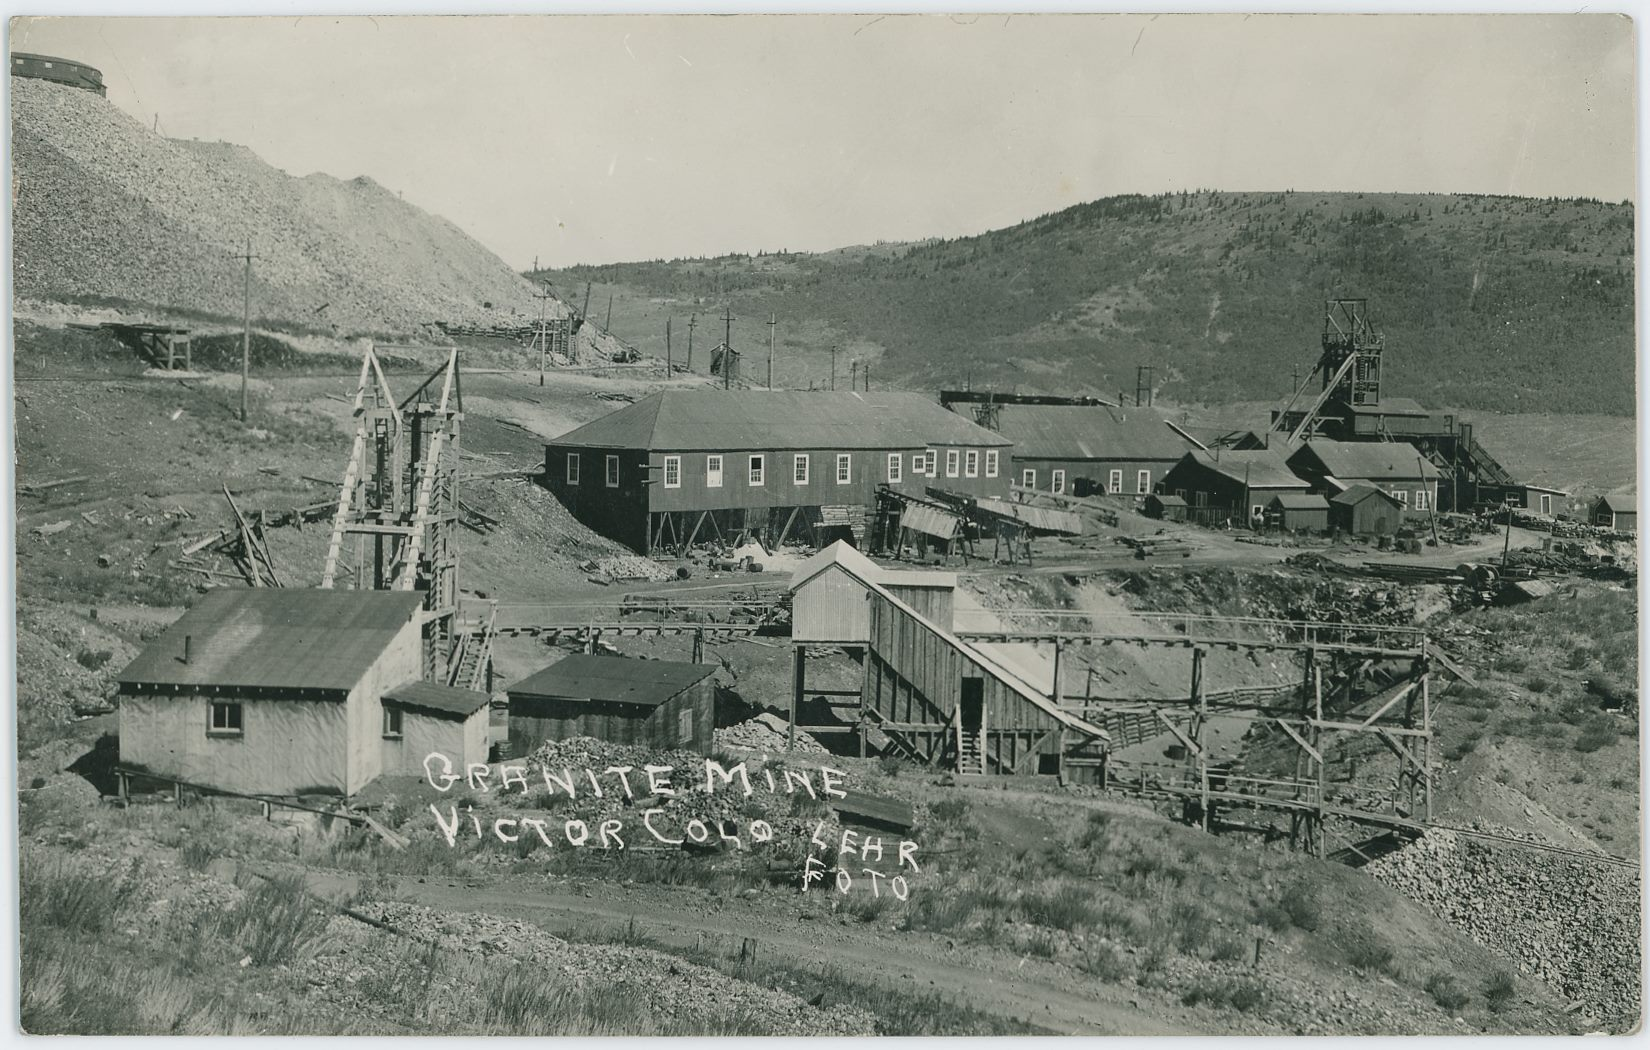 Scene shows the smaller more 'modern' Granite Mine as it was looking at the time of the photo, with the dumps of the Portland No. 2 in upper left and the Lumber Work House of the Portland No. 1 seen about 1/3 down from top and center sideways, while the Head-Frame is seen near right-hand side. The old grade of the Golden Circle ran in the 'cut' seen in lower right quadrangle – having come out from the Steel Tunnel below the Portland No. 1 dumps, part of the crib-walls is still seen in this view.    There appears to still be track on the Short Line Ajax branch as well, seen below the Portland No. 2 dumps in upper left, track is seen about 1/3 down from top, from left-hand edge to about 2/5 into the view towards right, where it curves out of out view.